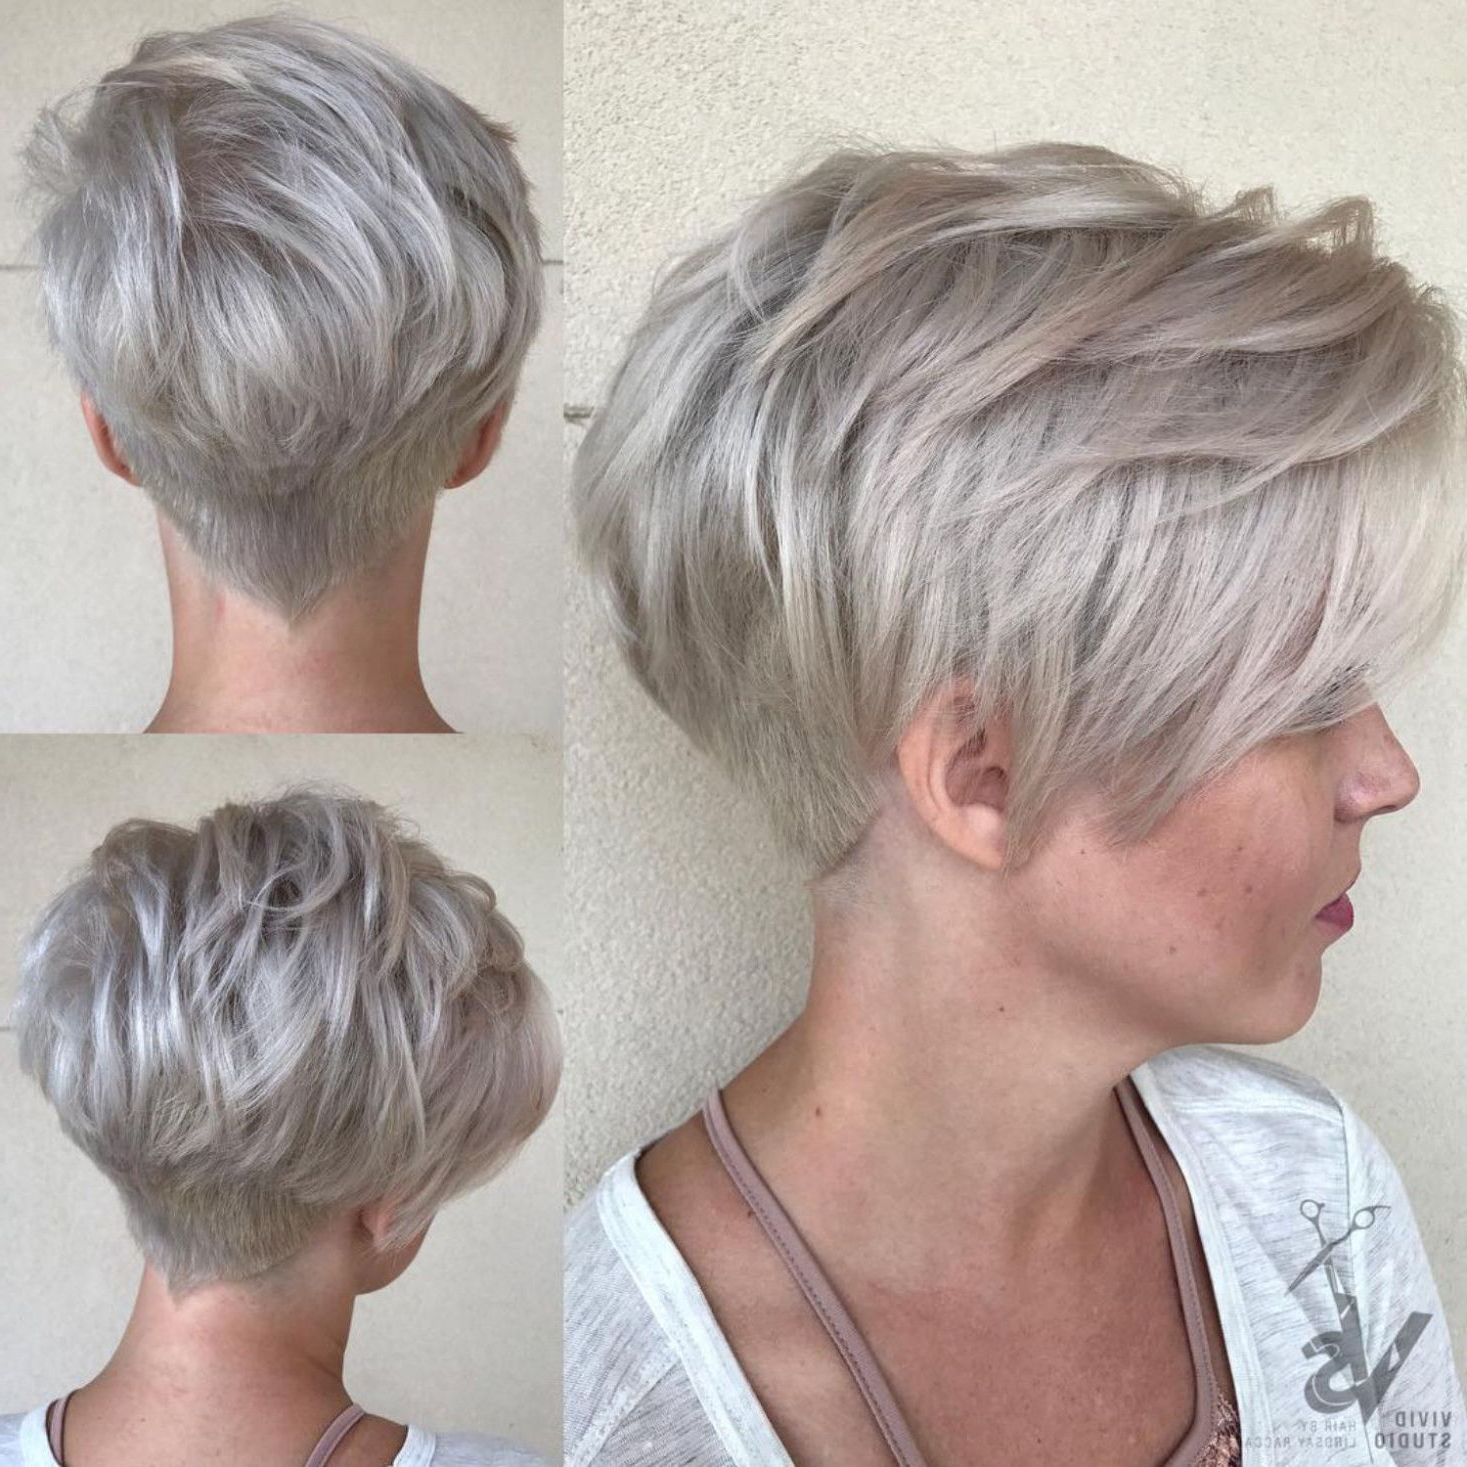 100 Mind Blowing Short Hairstyles For Fine Hair | Pinterest | Pixies With Bronde Balayage Pixie Haircuts With V Cut Nape (View 1 of 20)